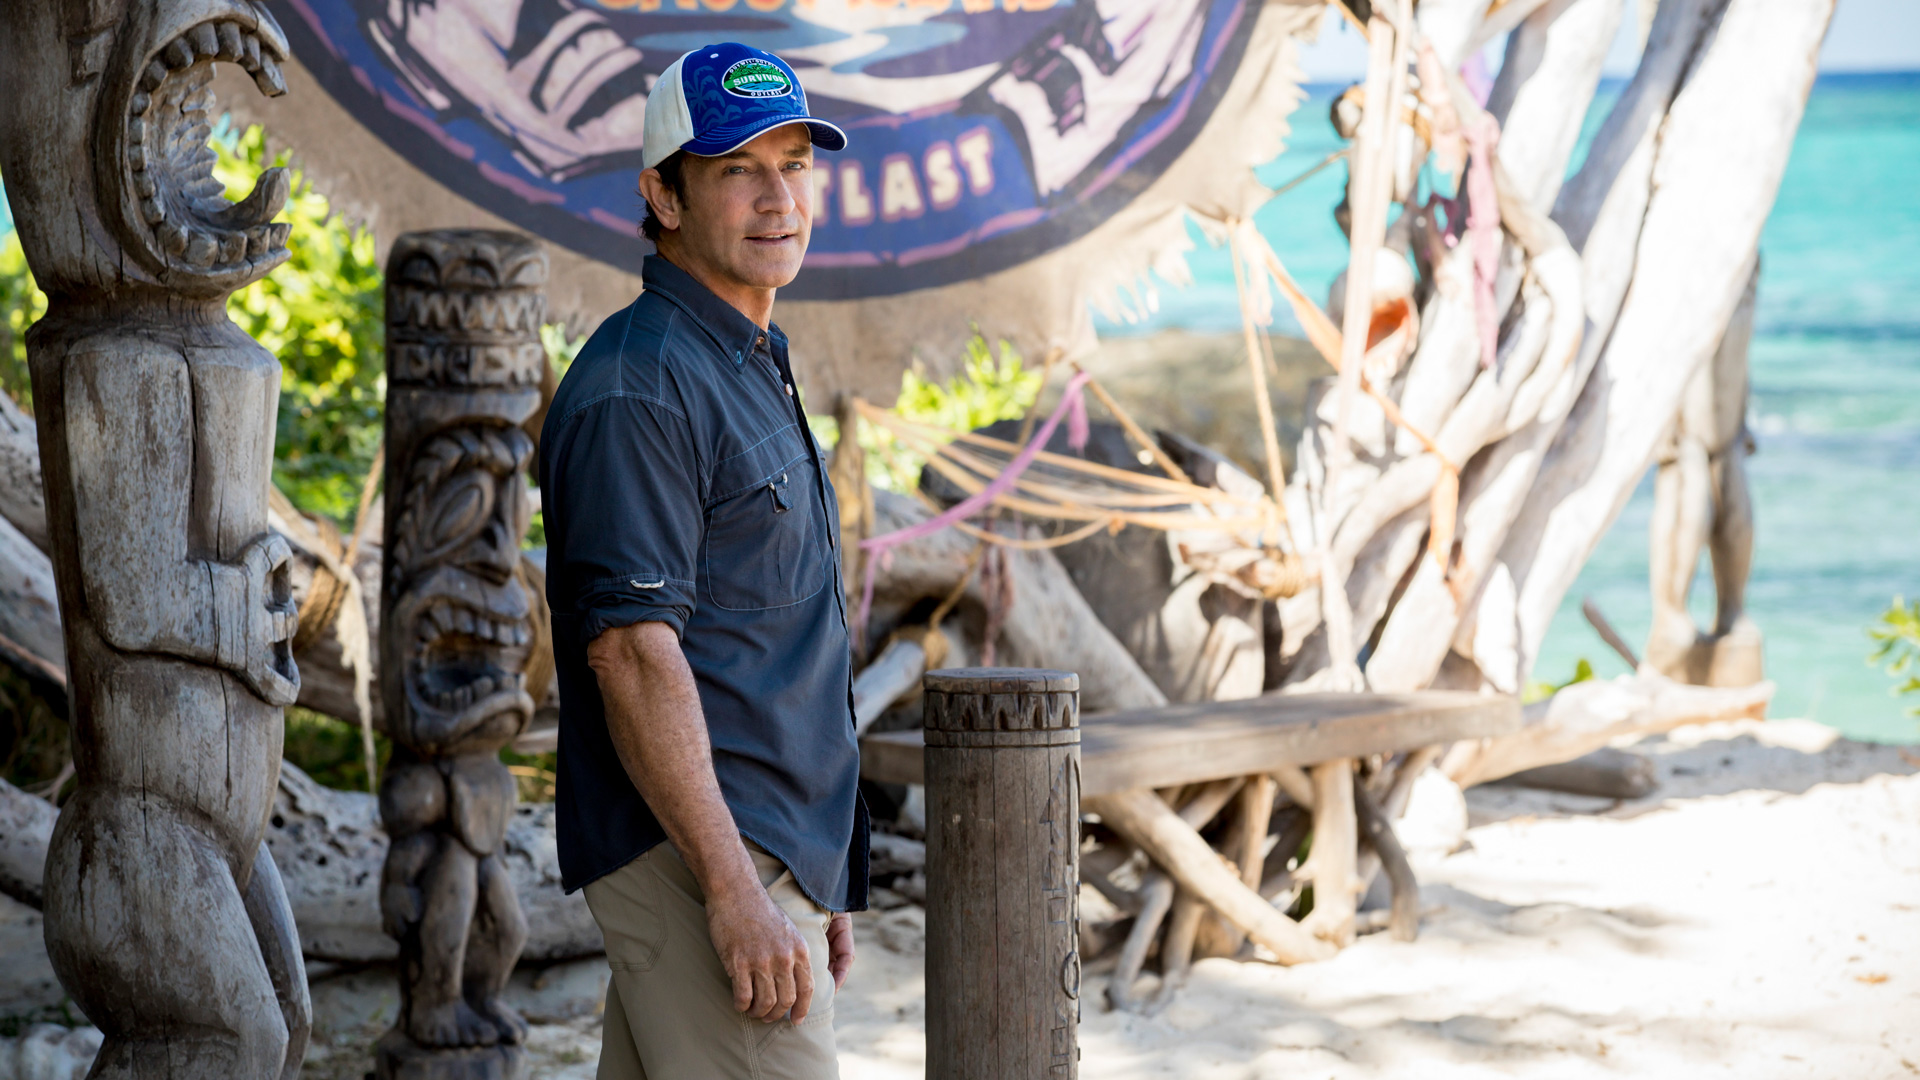 And of course, Jeff Probst returns for his 36th season as the show's host.